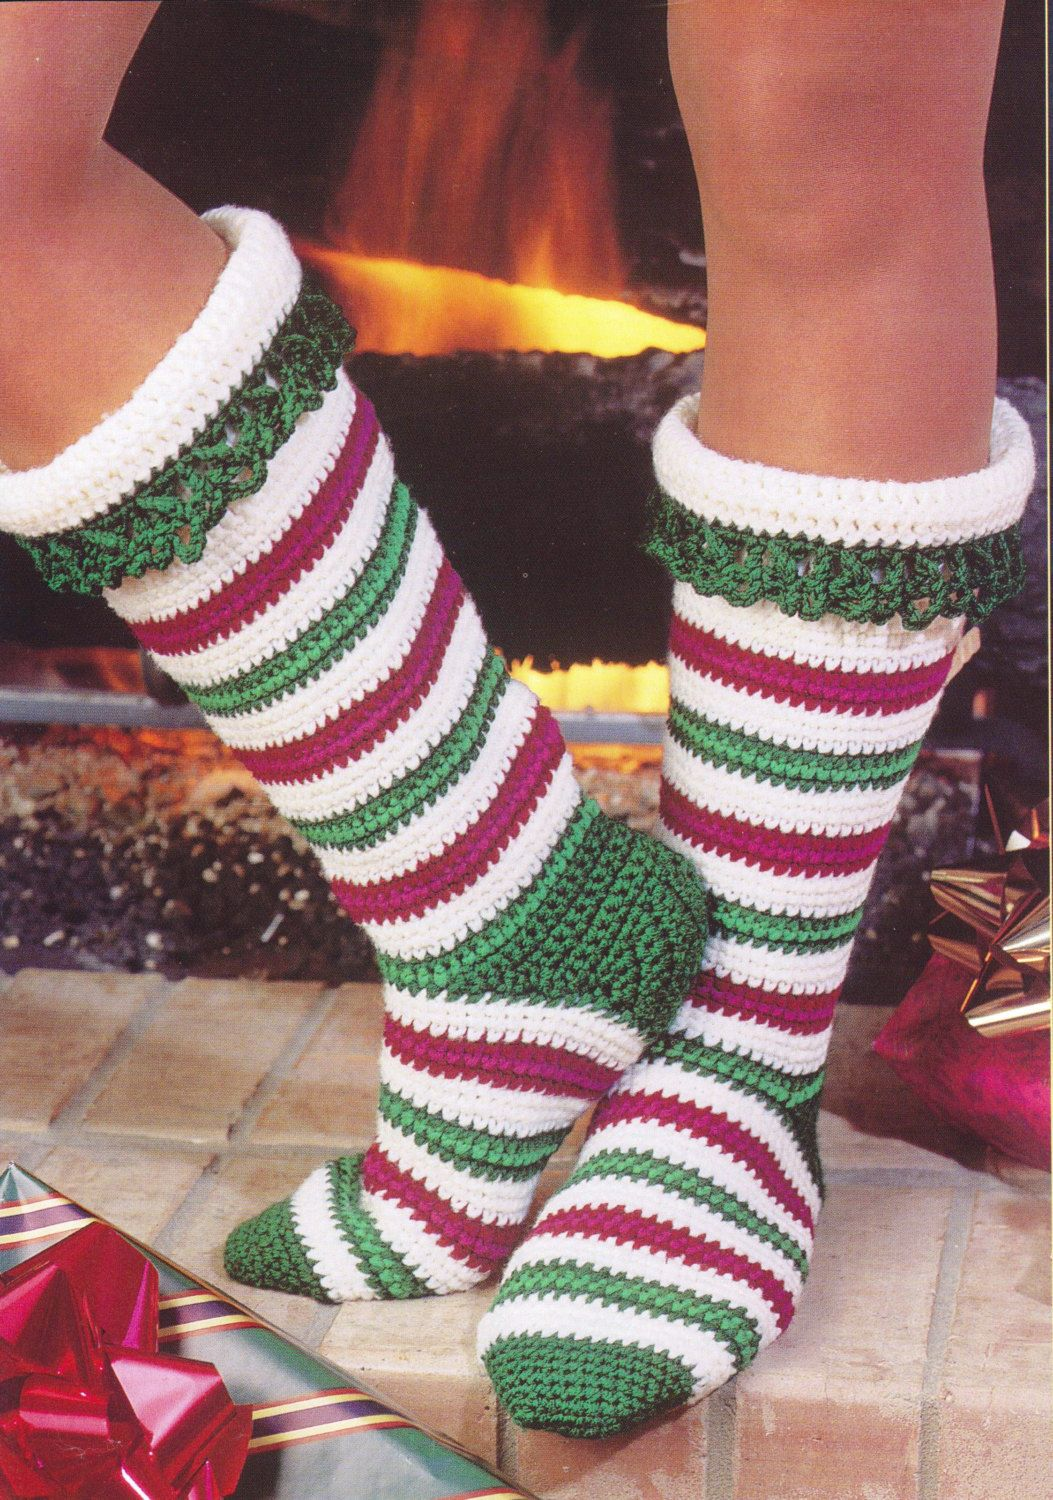 Crochet Socks Pattern - Candy Cane Stockings Crochet Pattern Holiday Christmas Socks Women Girls - PDF Download by SassyloveCrochet on Etsy